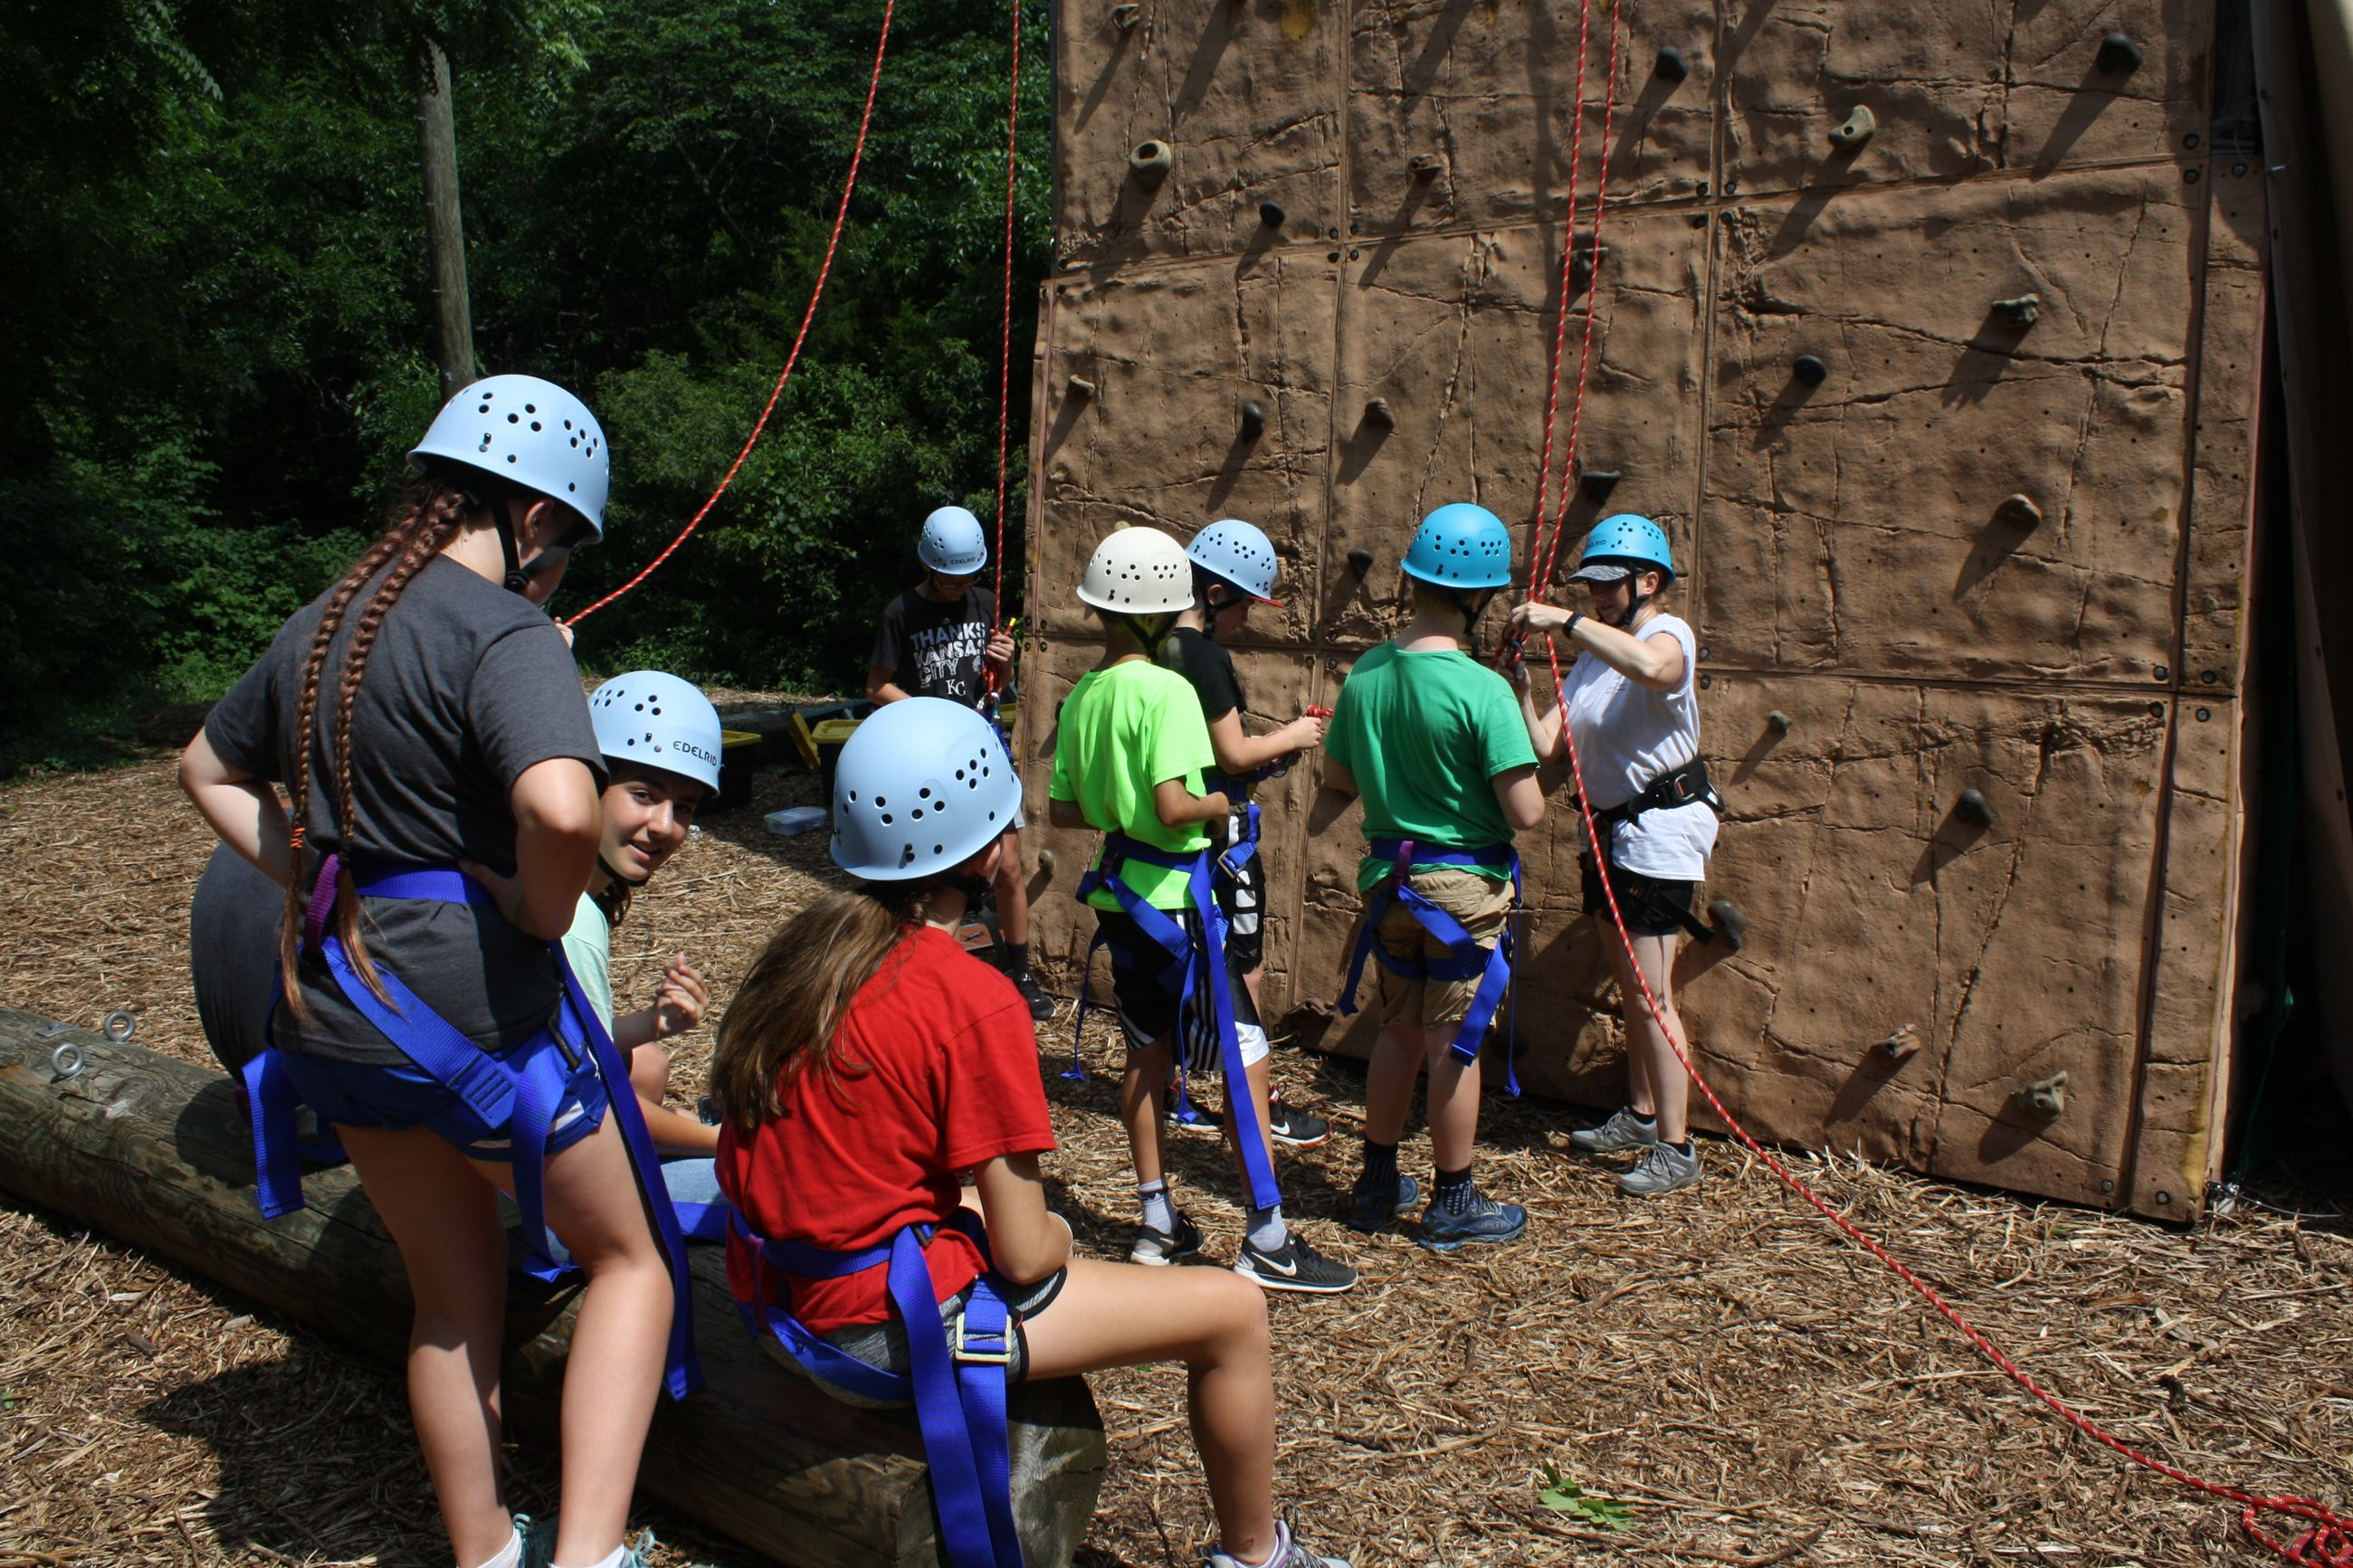 Group of kids at a climbing wall